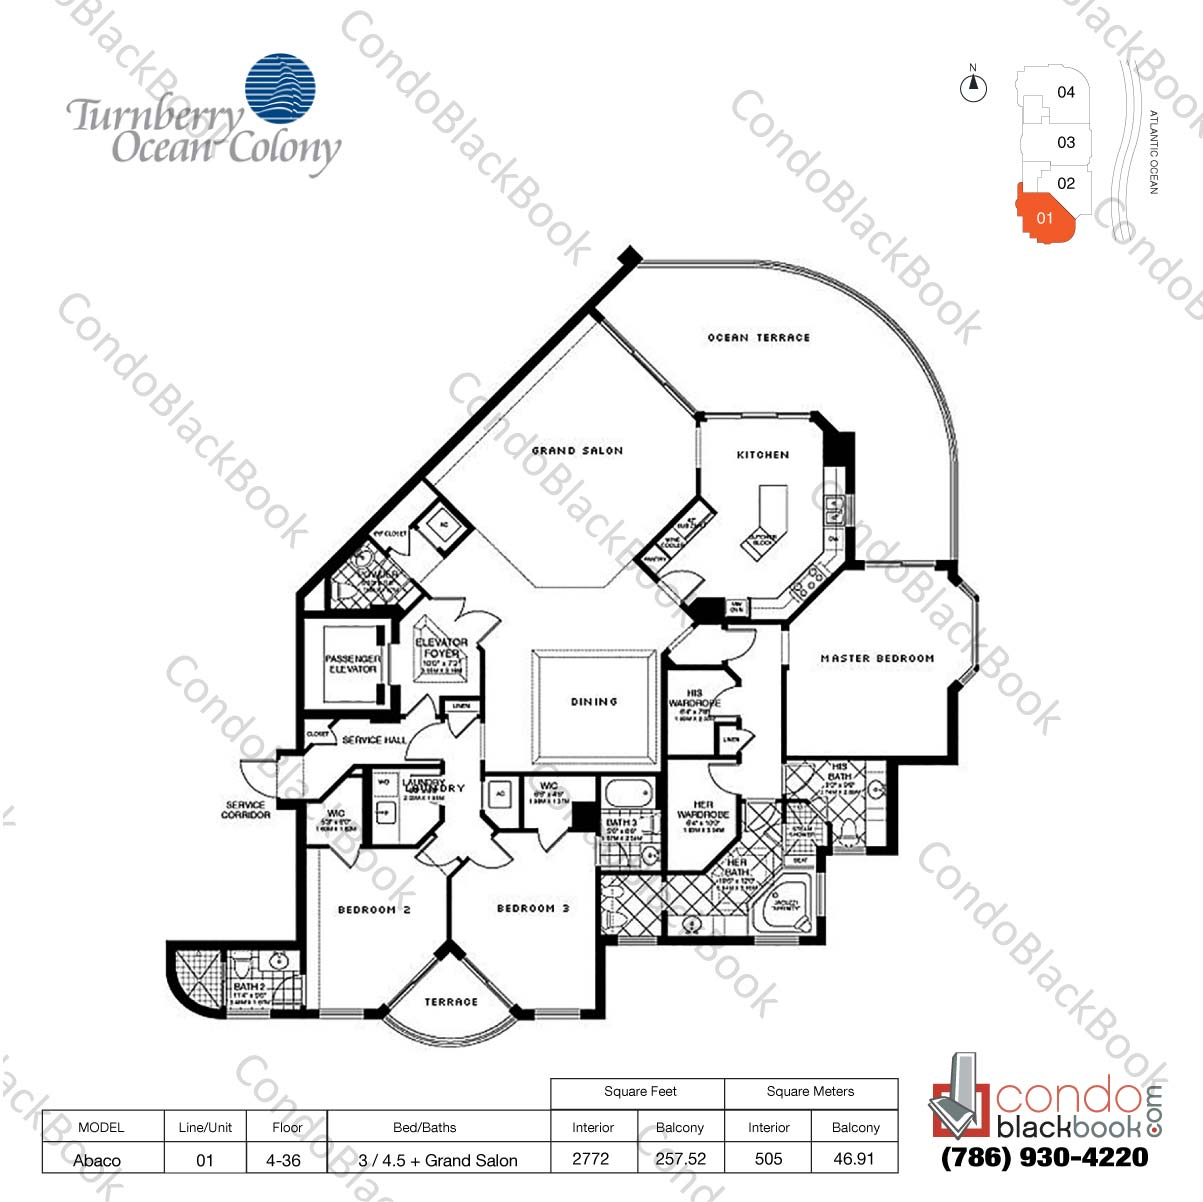 Floor plan for Turnberry Ocean Colony Sunny Isles Beach, model Abaco, line 01, 3 / 4.5 + Grand Salon bedrooms, 2772 sq ft